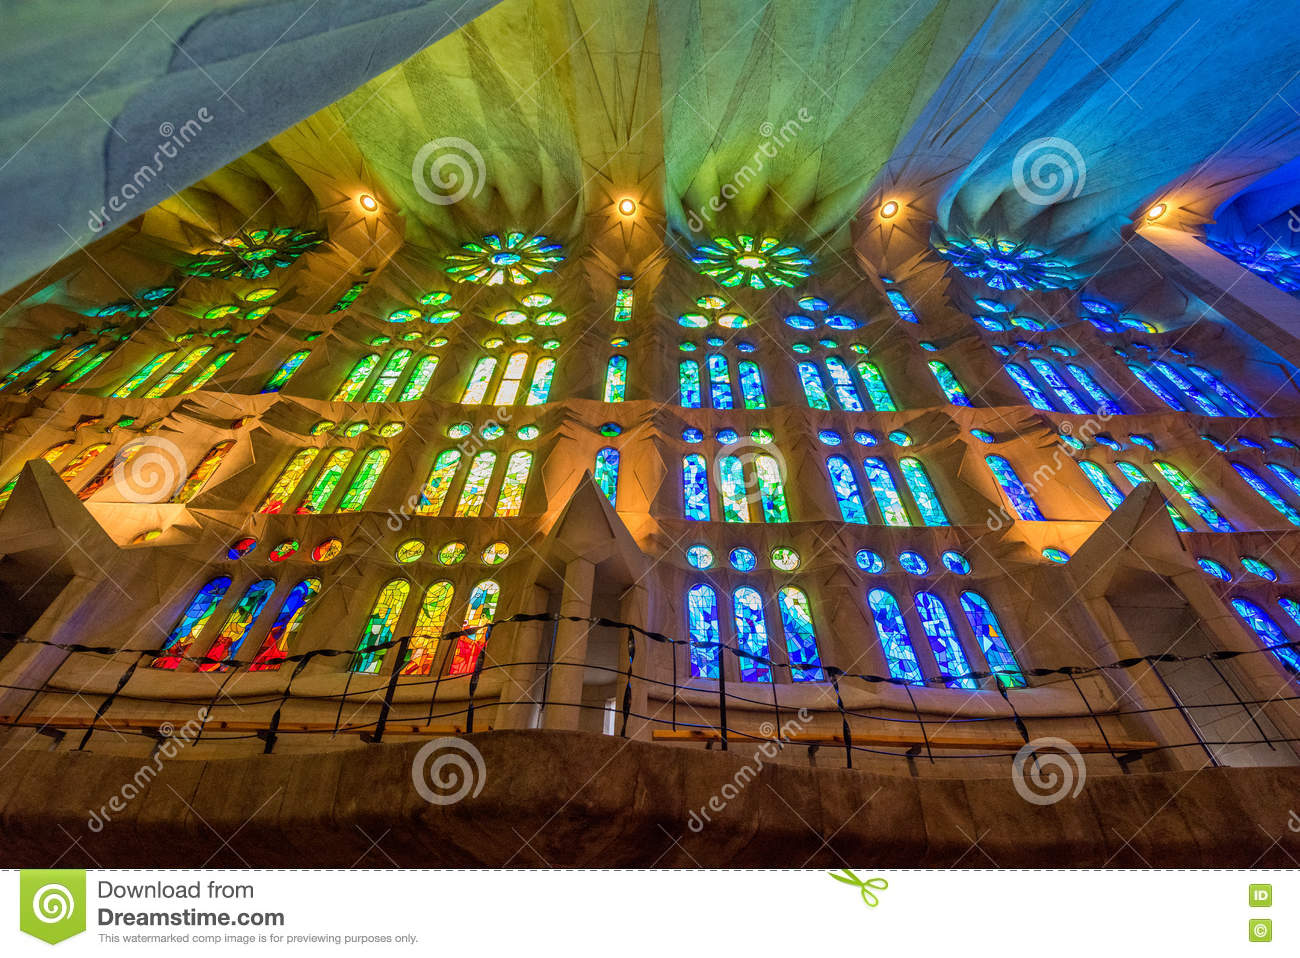 Sunset reflections on the stained glass of La Sagrada Familia church, Barcelona